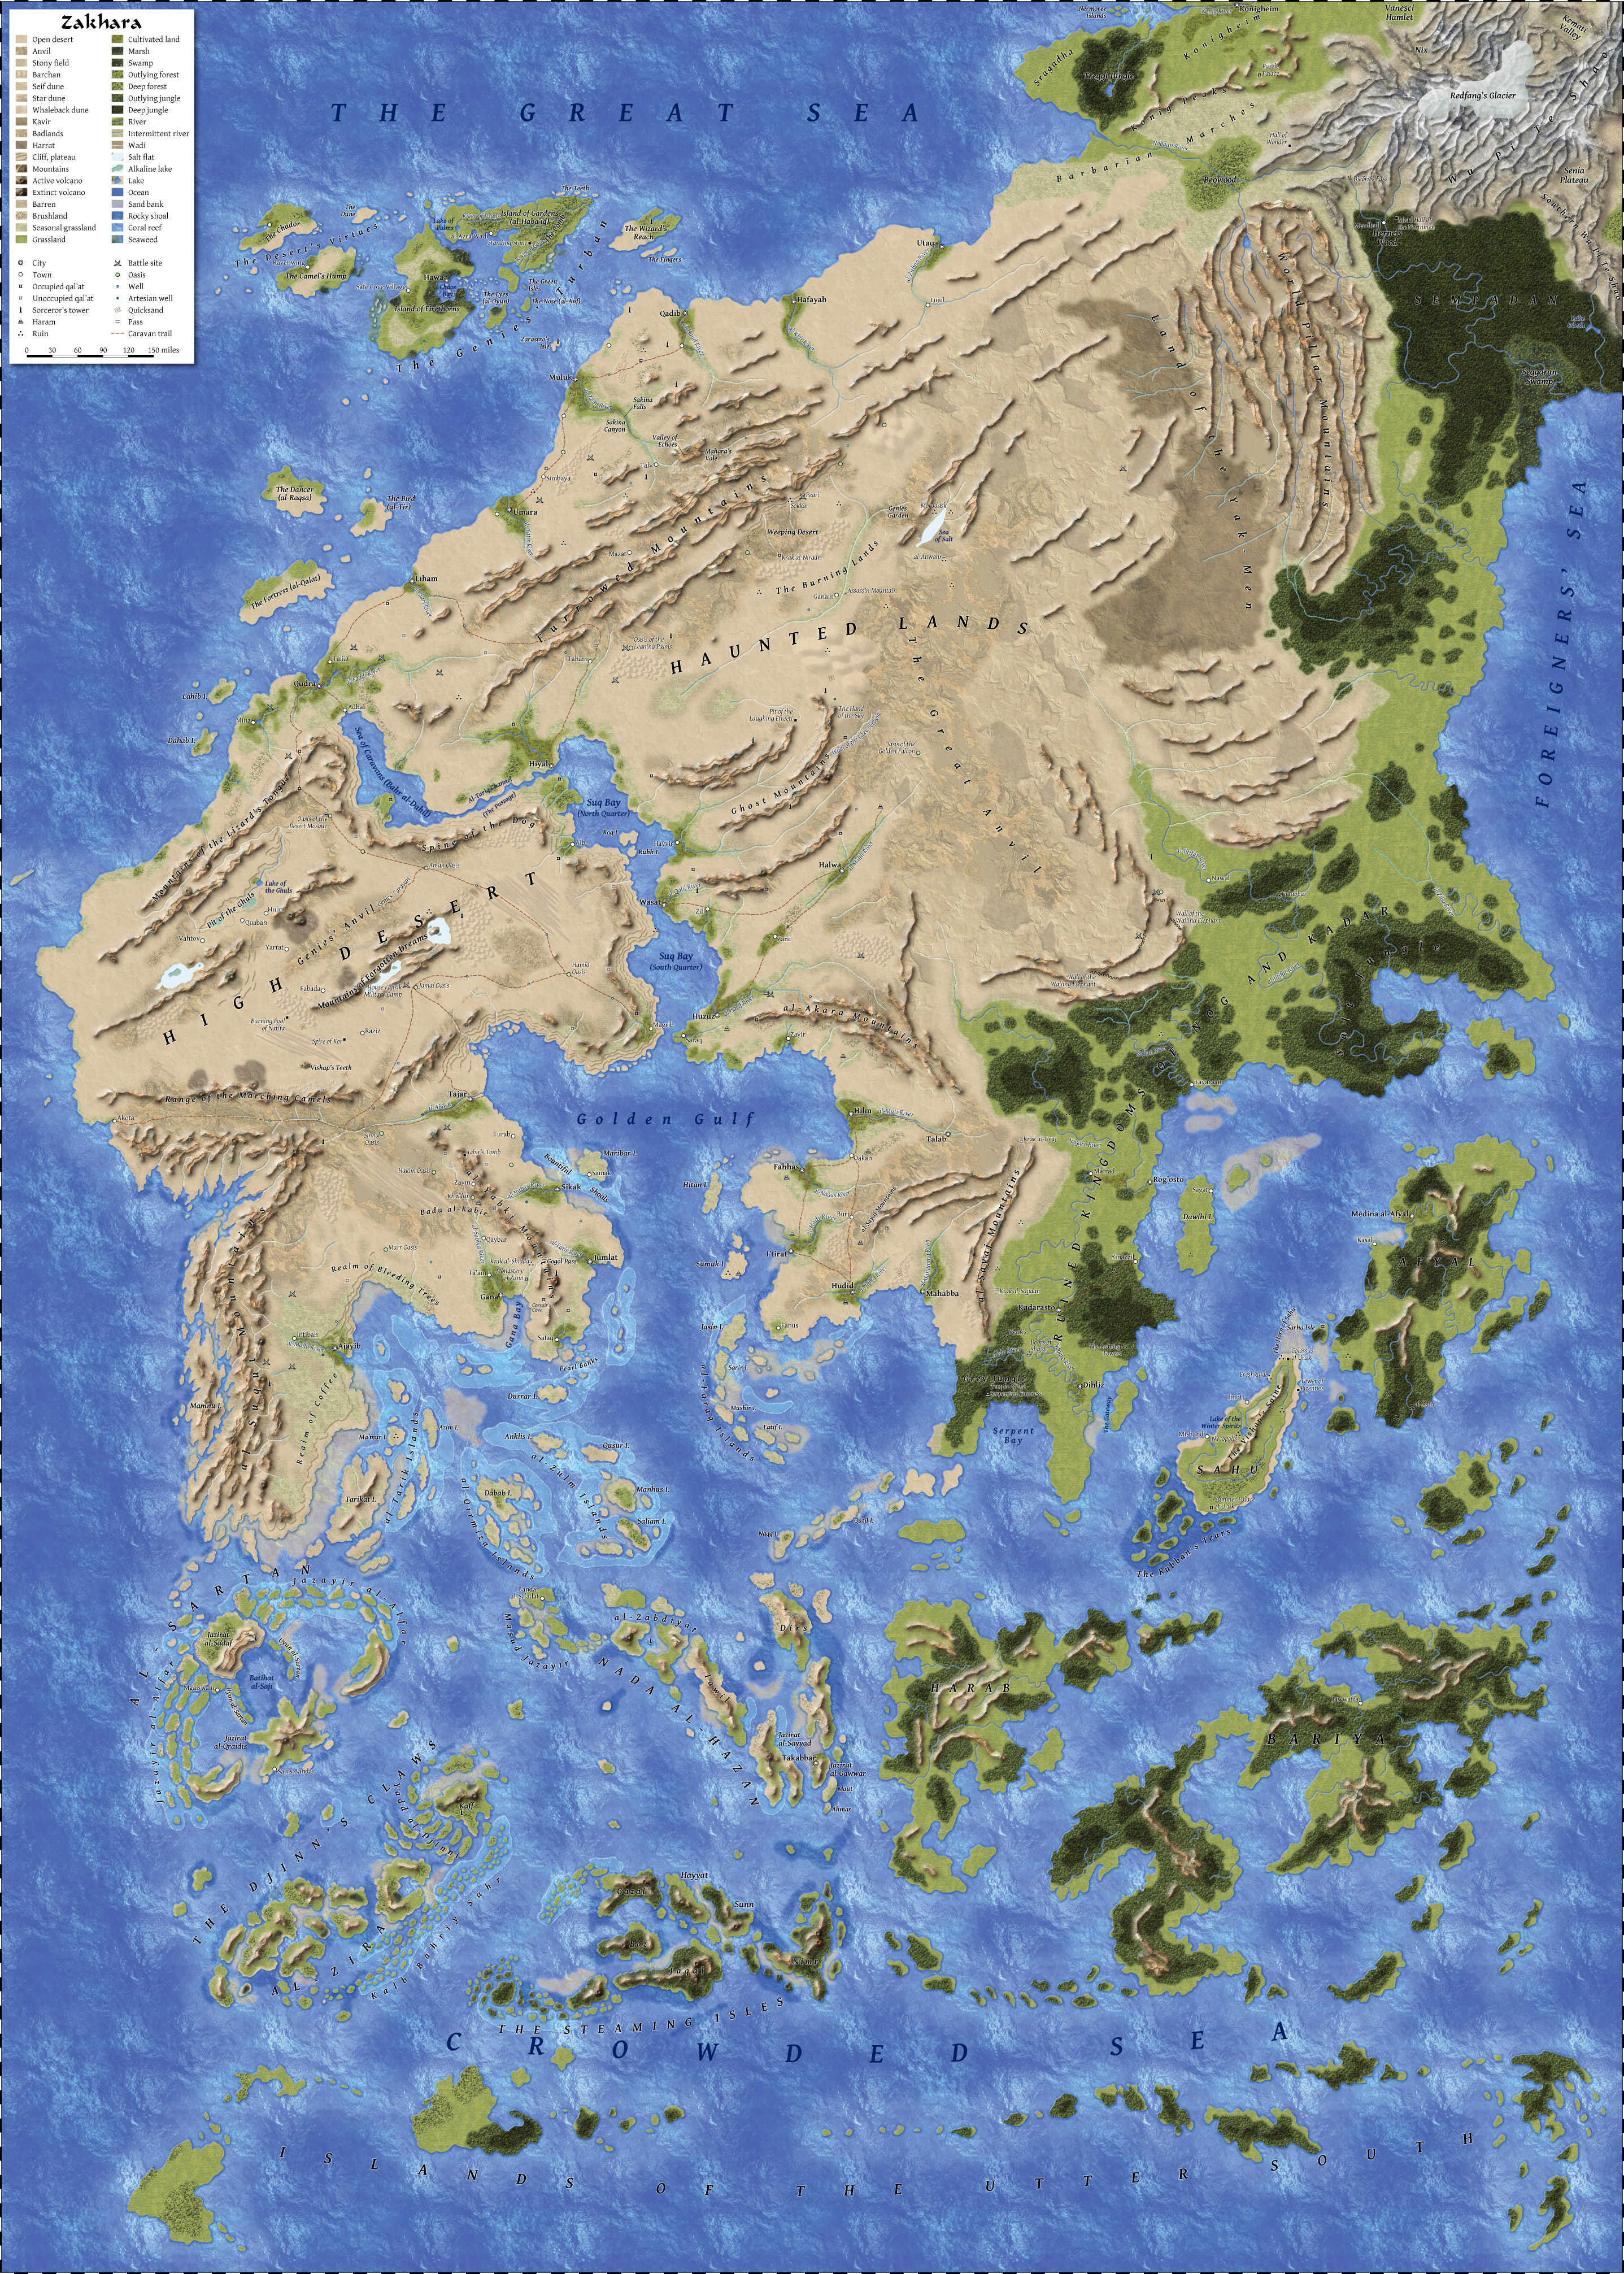 Zakhara forgotten realms wiki fandom powered by wikia gumiabroncs Image collections